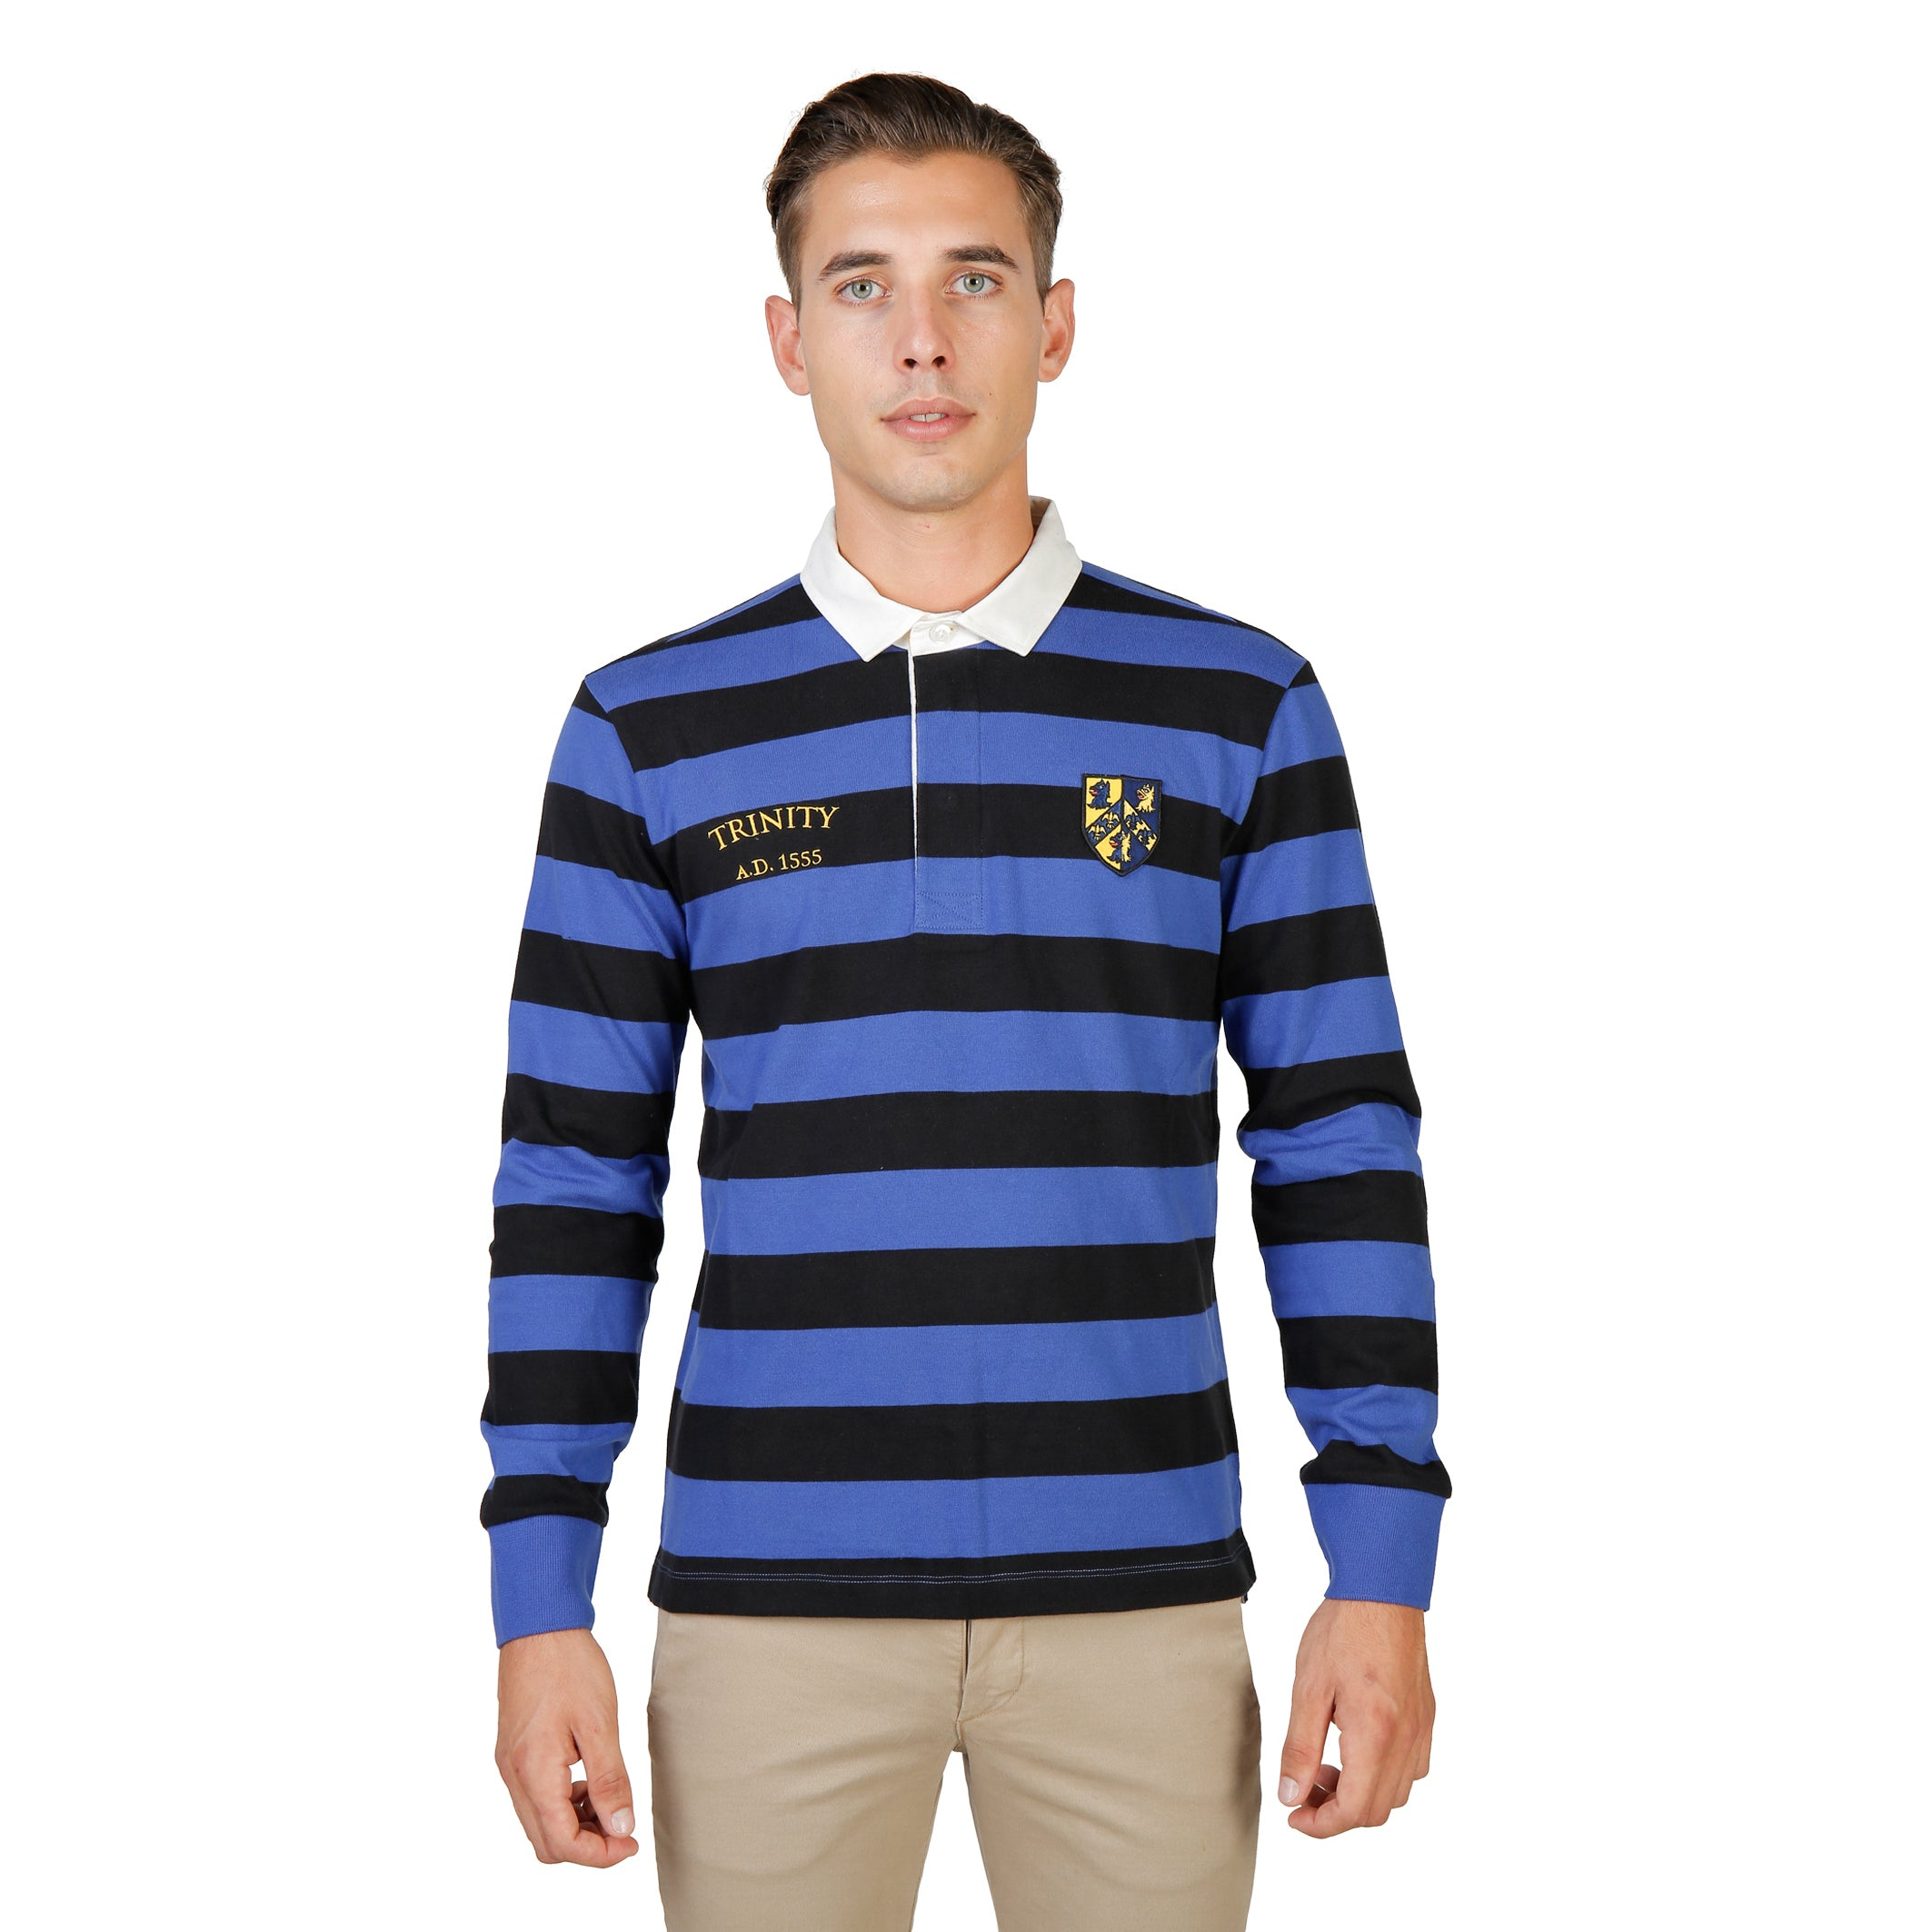 Abbigliamento Polo Oxford University - ORIEL-RUGBY-ML Marche Famose